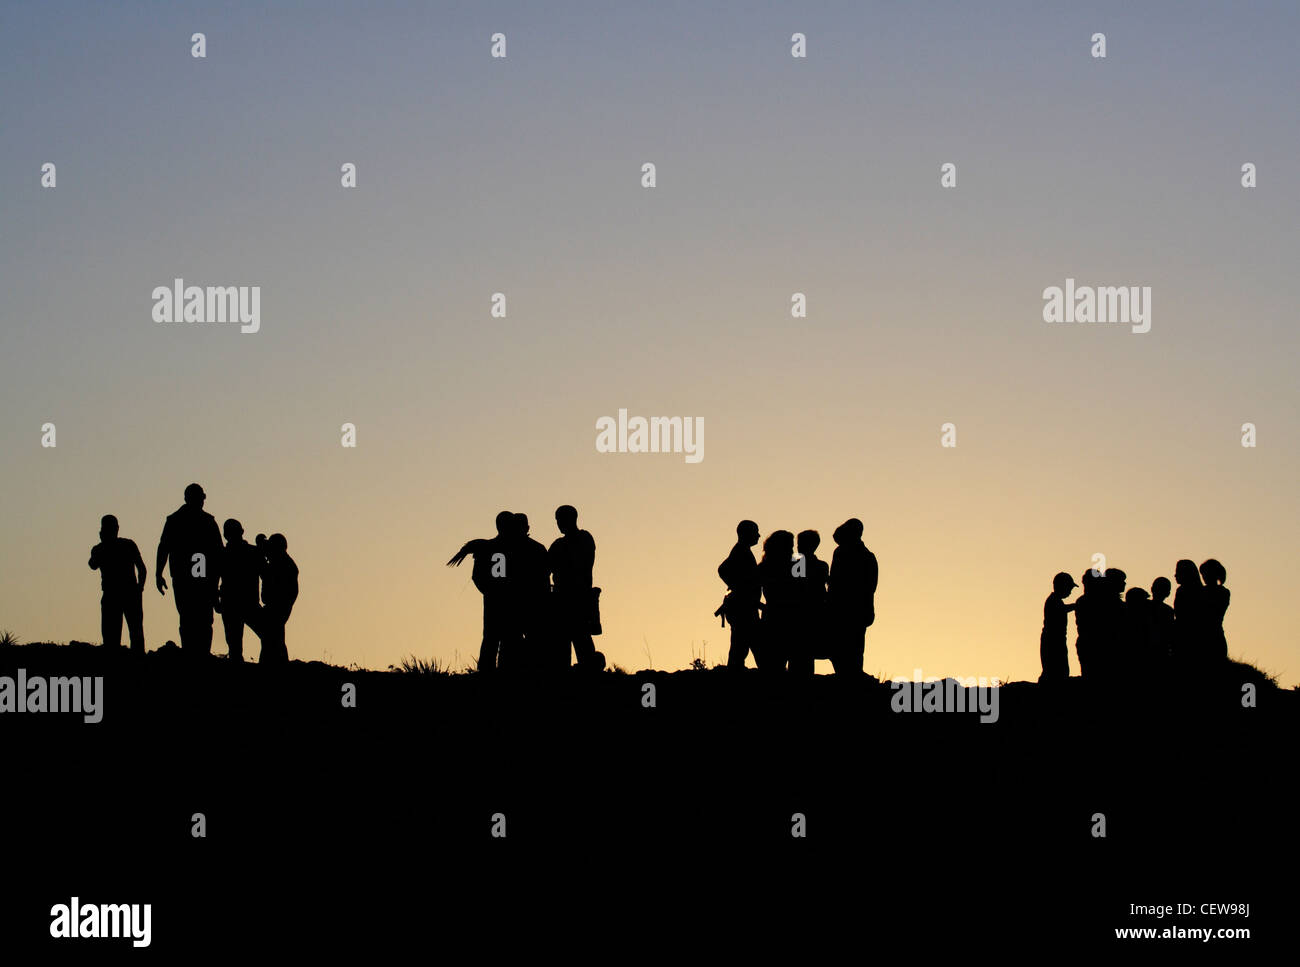 Groups of people in silhouette at dusk. Can be used as lifestyle concept photo illustrating social interaction, - Stock Image